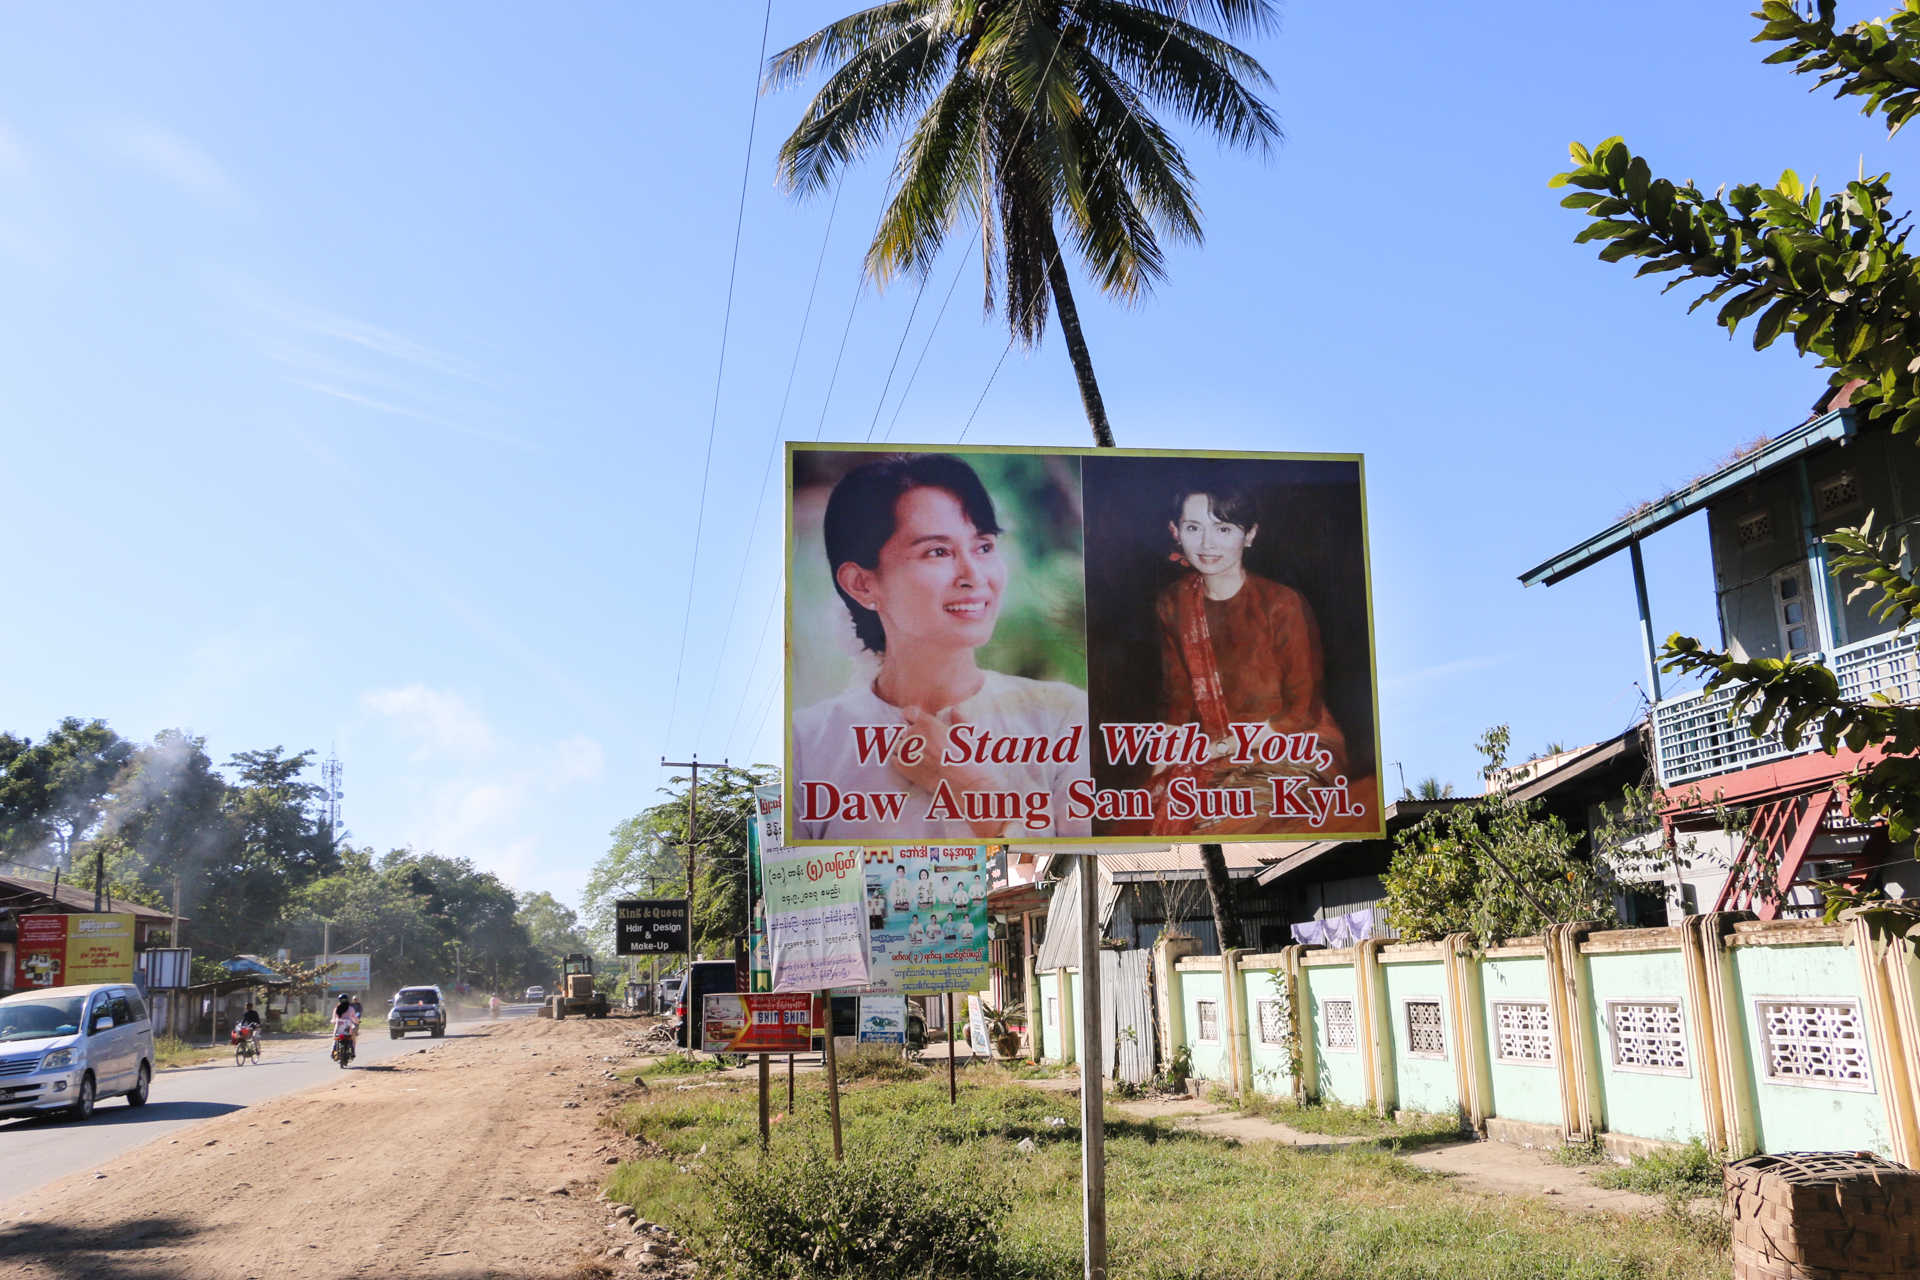 A signboard supporting Myanmar's defacto leader, Aung San Suu Kyi, is seen in Myitkyina.